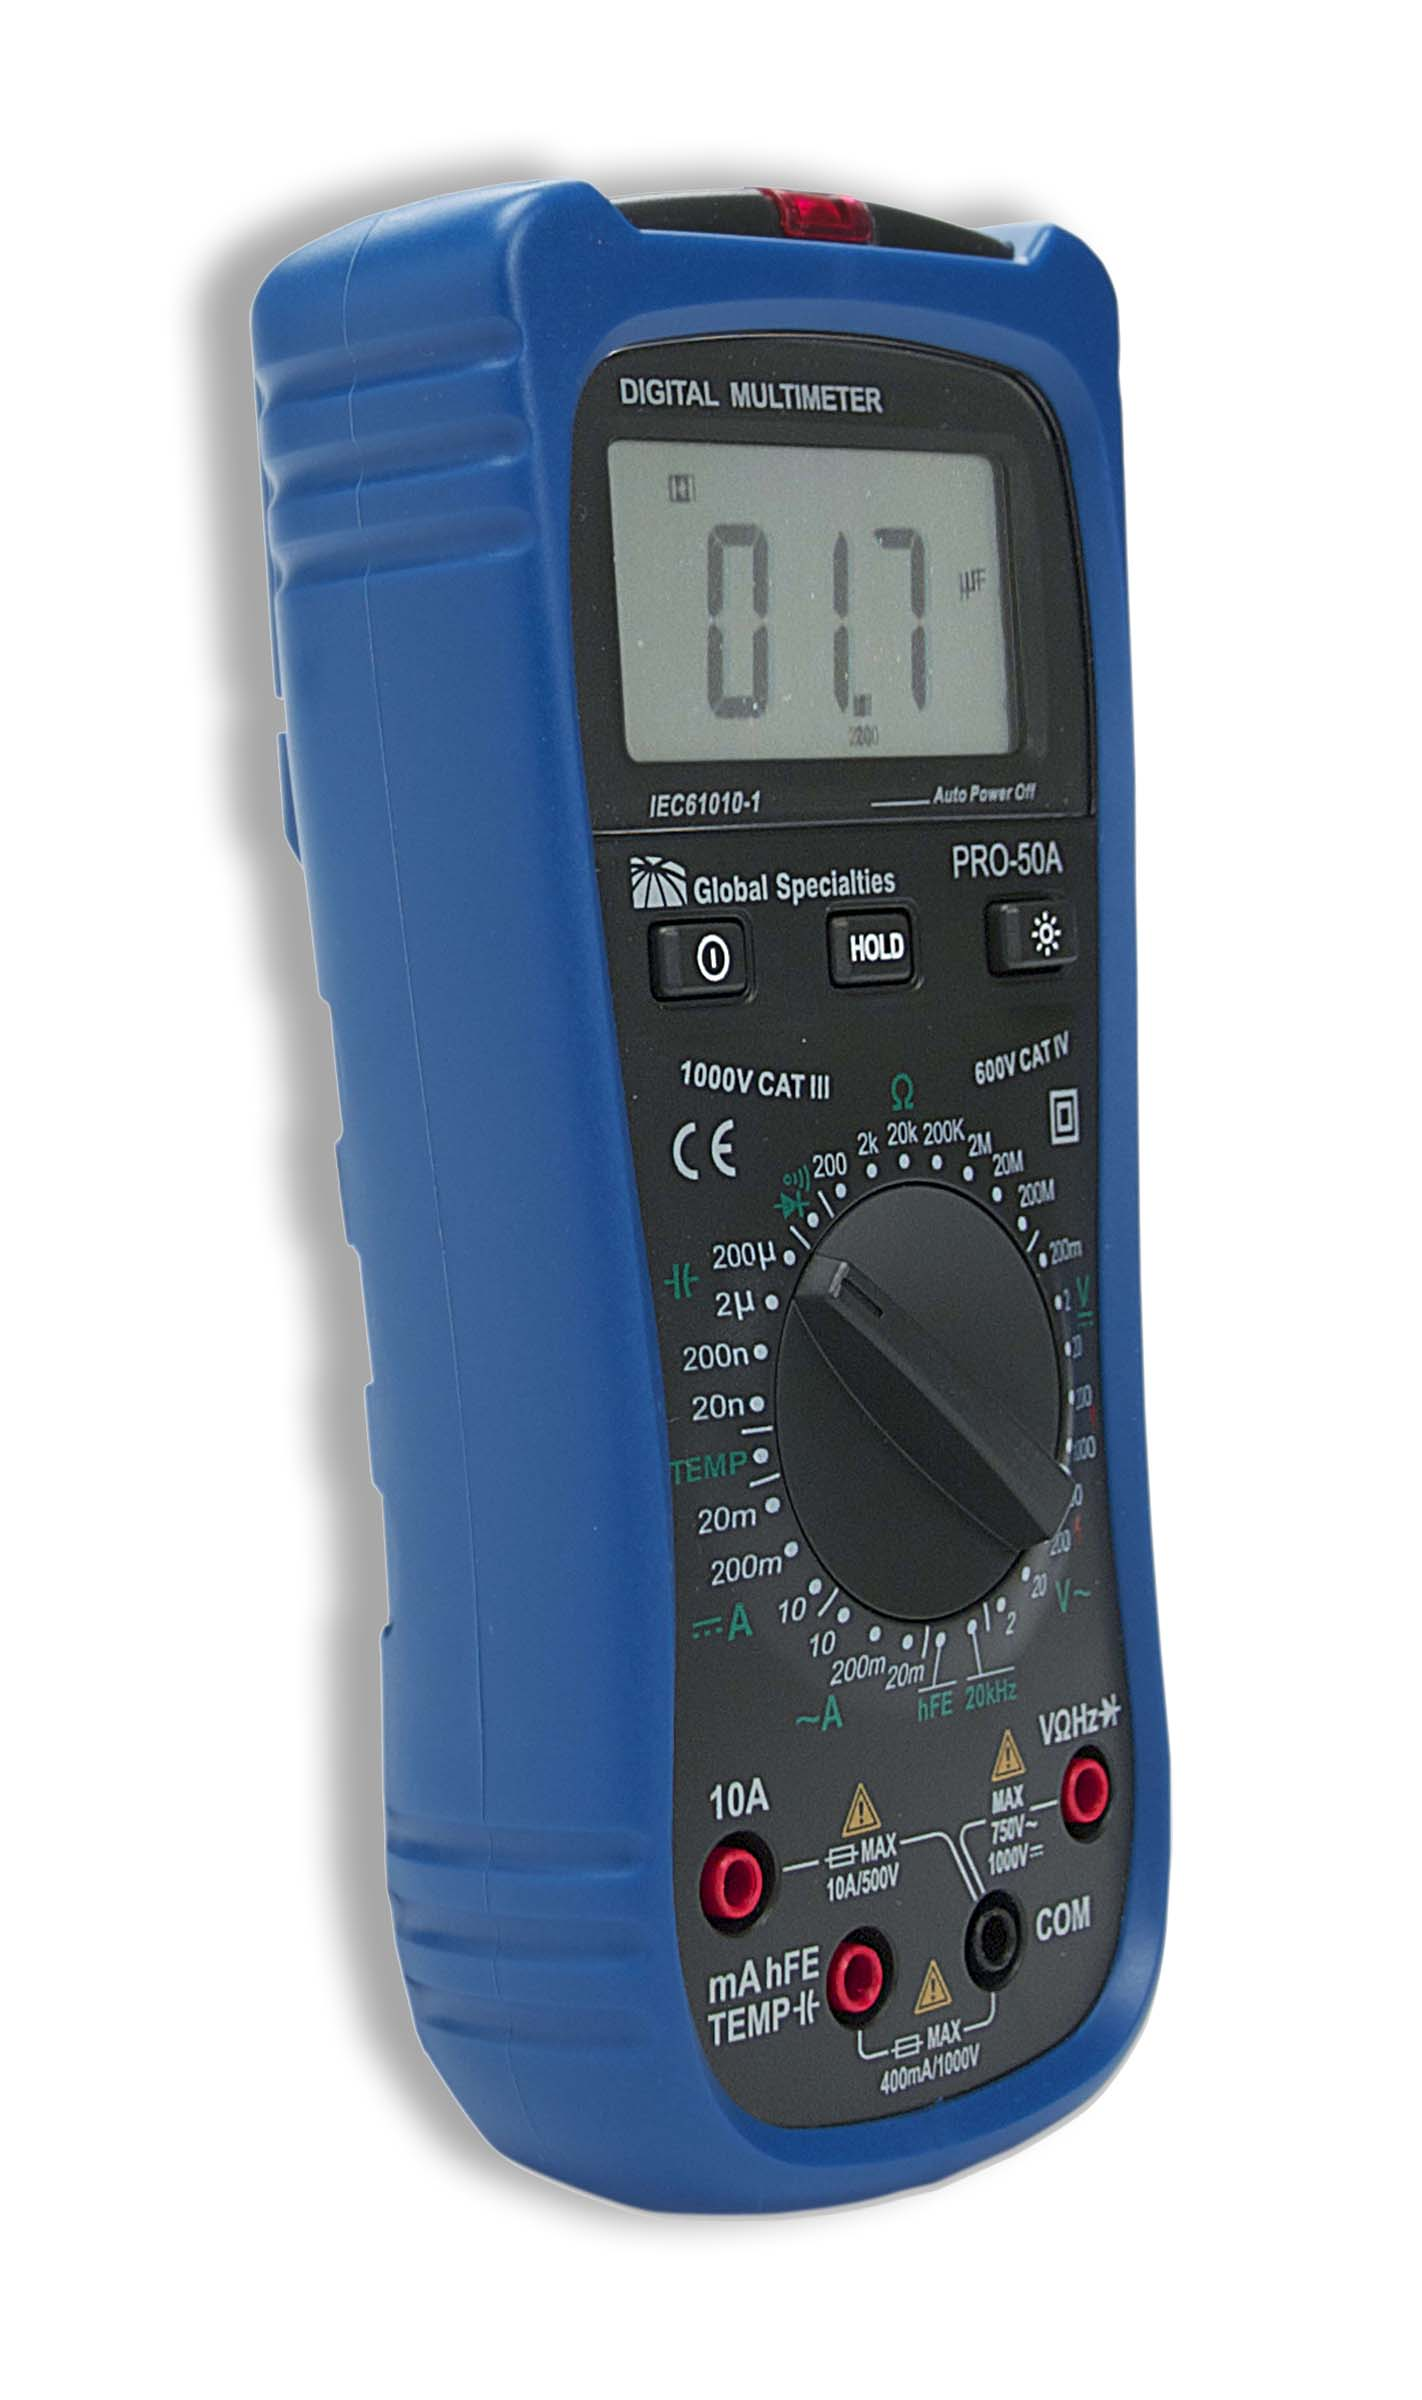 Global Specialties PRO-50A Handheld Digital Multimeter Photo